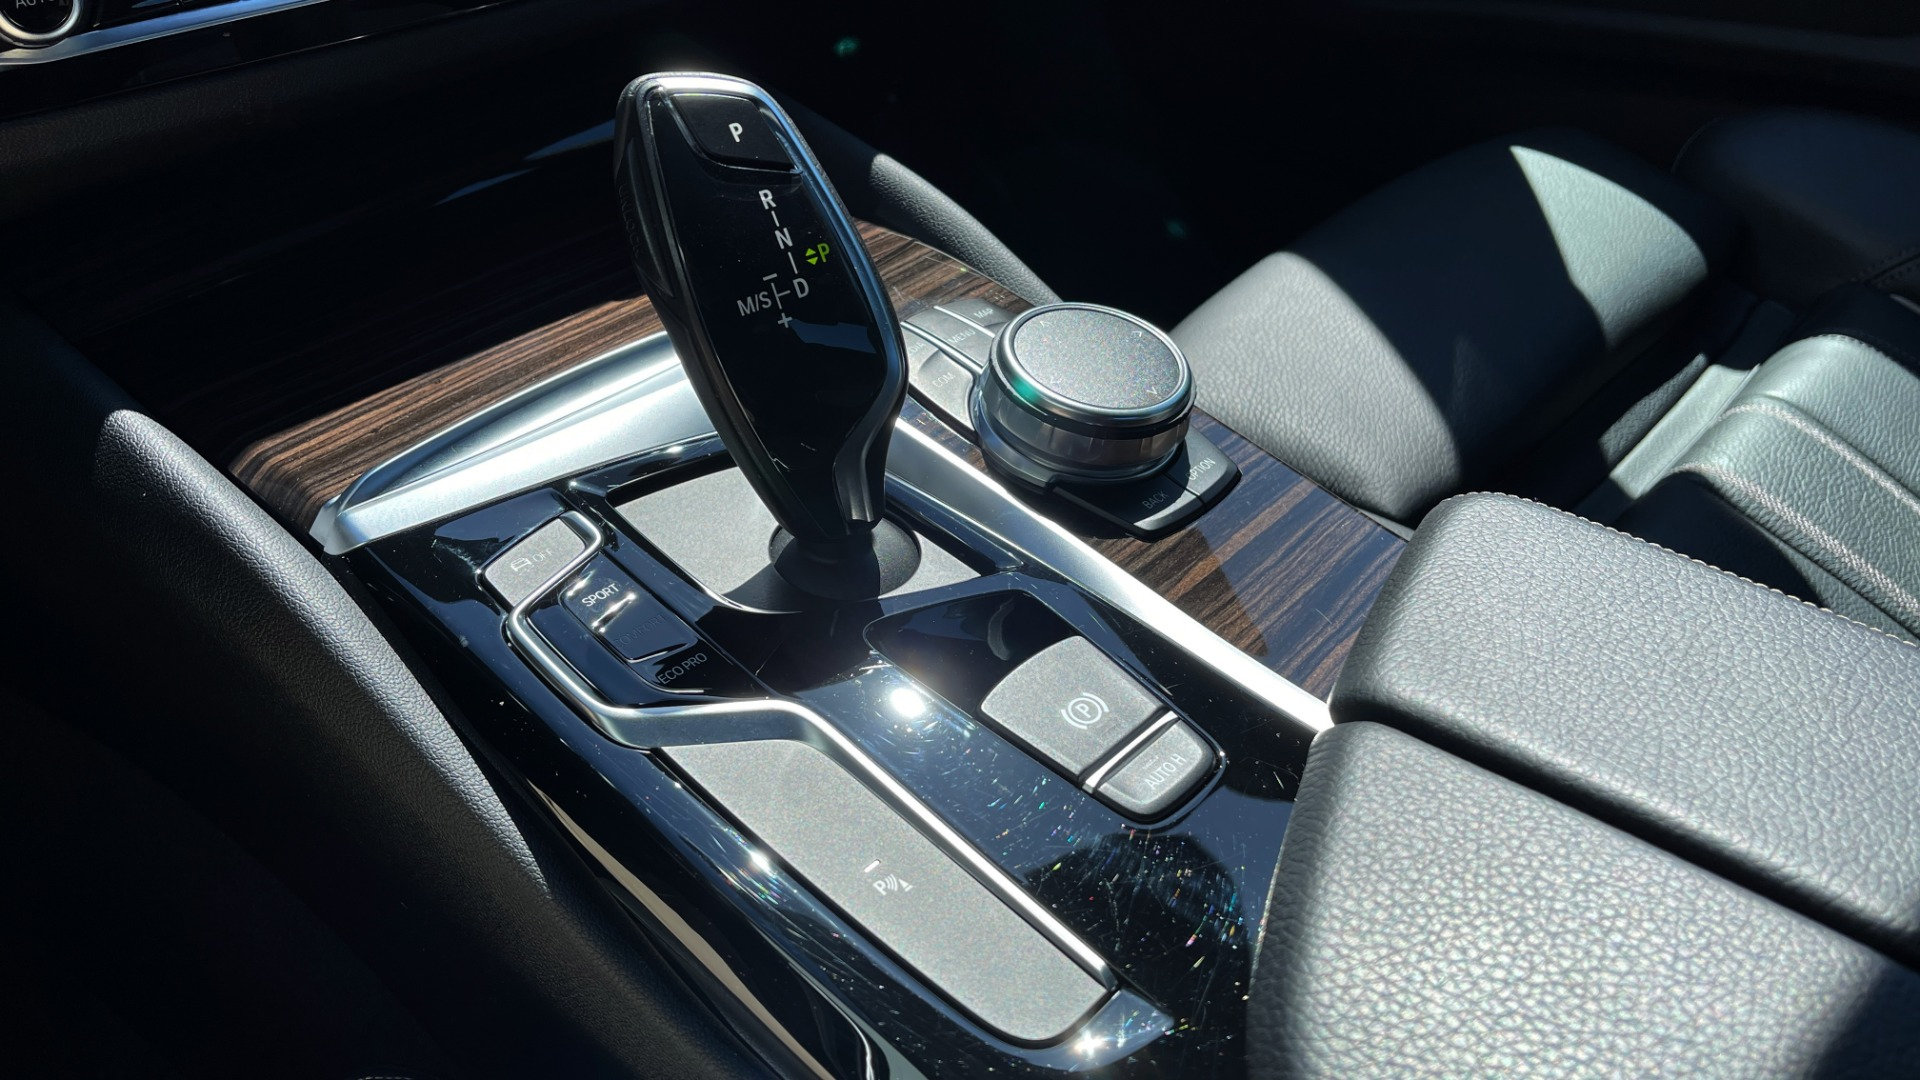 Used 2018 BMW 5 SERIES 540I XDRIVE PREMIUM / NAV / PARK ASST / WIRELESS CHARGING H/K SND for sale $38,395 at Formula Imports in Charlotte NC 28227 60